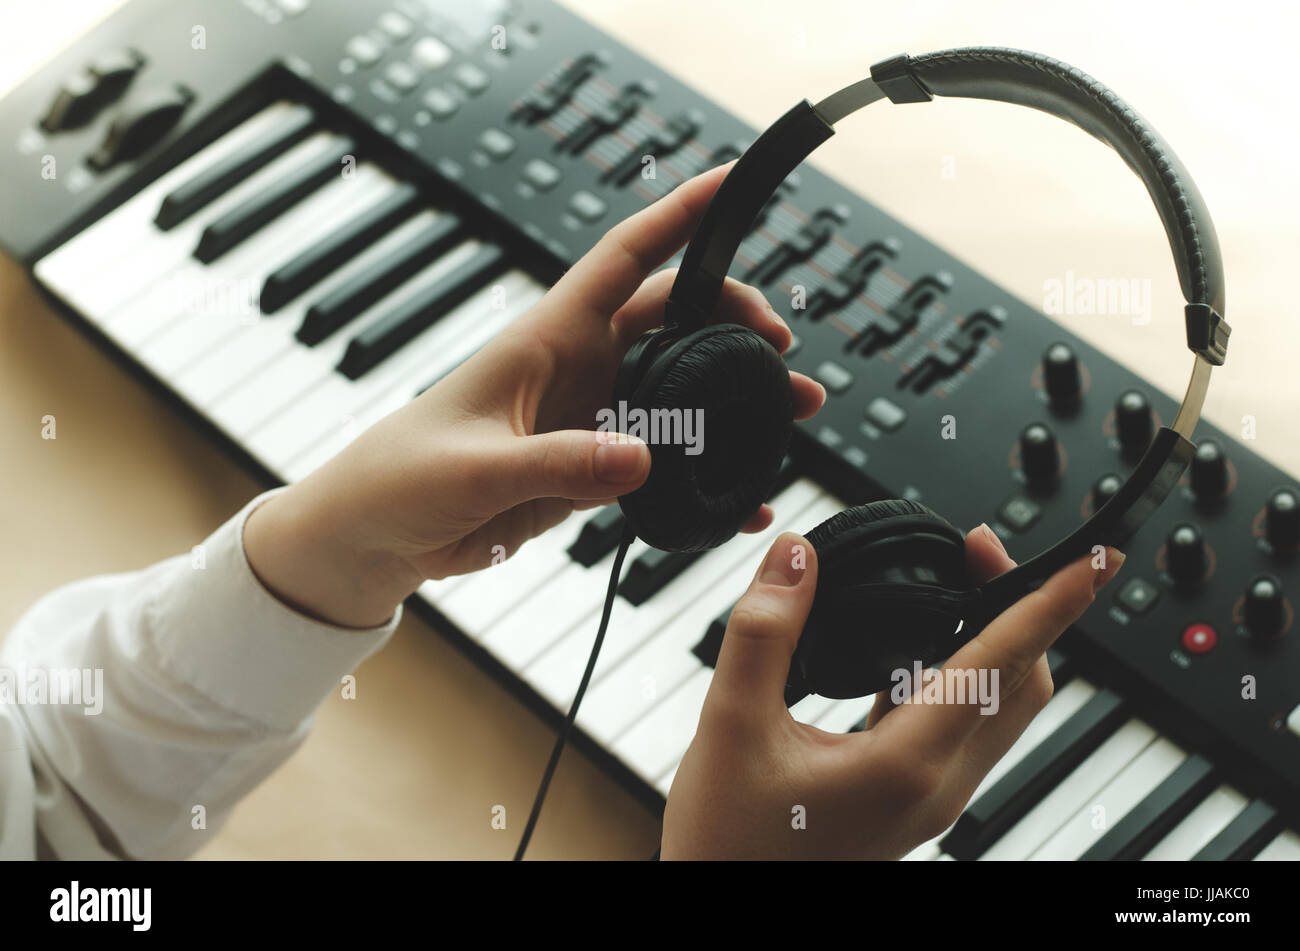 A woman in a white shirt is holding headphones in front of a synthesizer. There are two hands in the frame - Stock Image